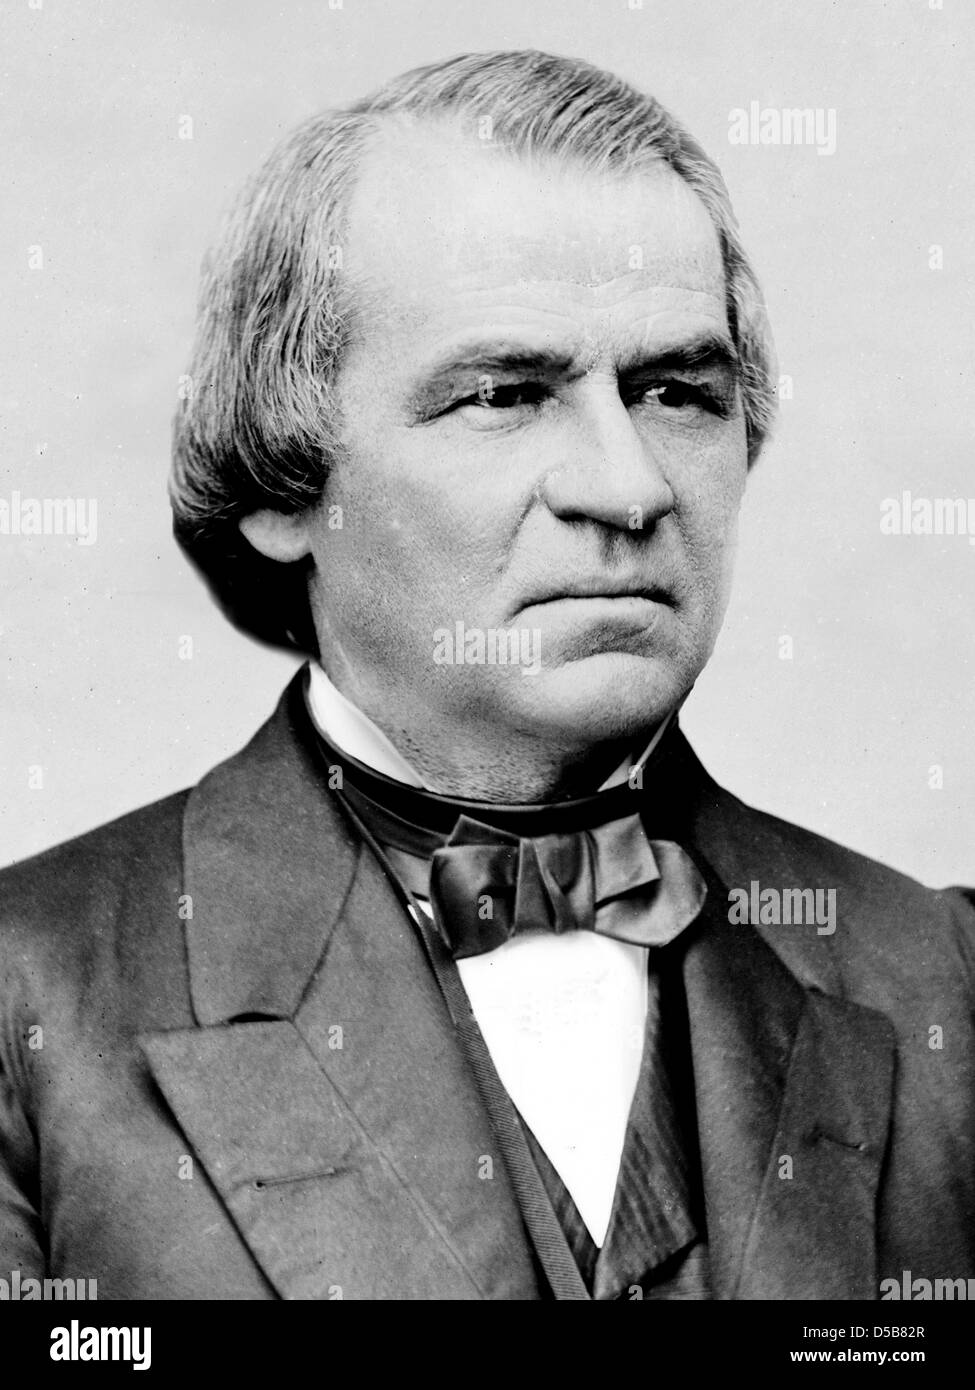 ANDREW JOHNSON (1808-1875) who became 17th President of the USA when Lincoln was assassinated. - Stock Image